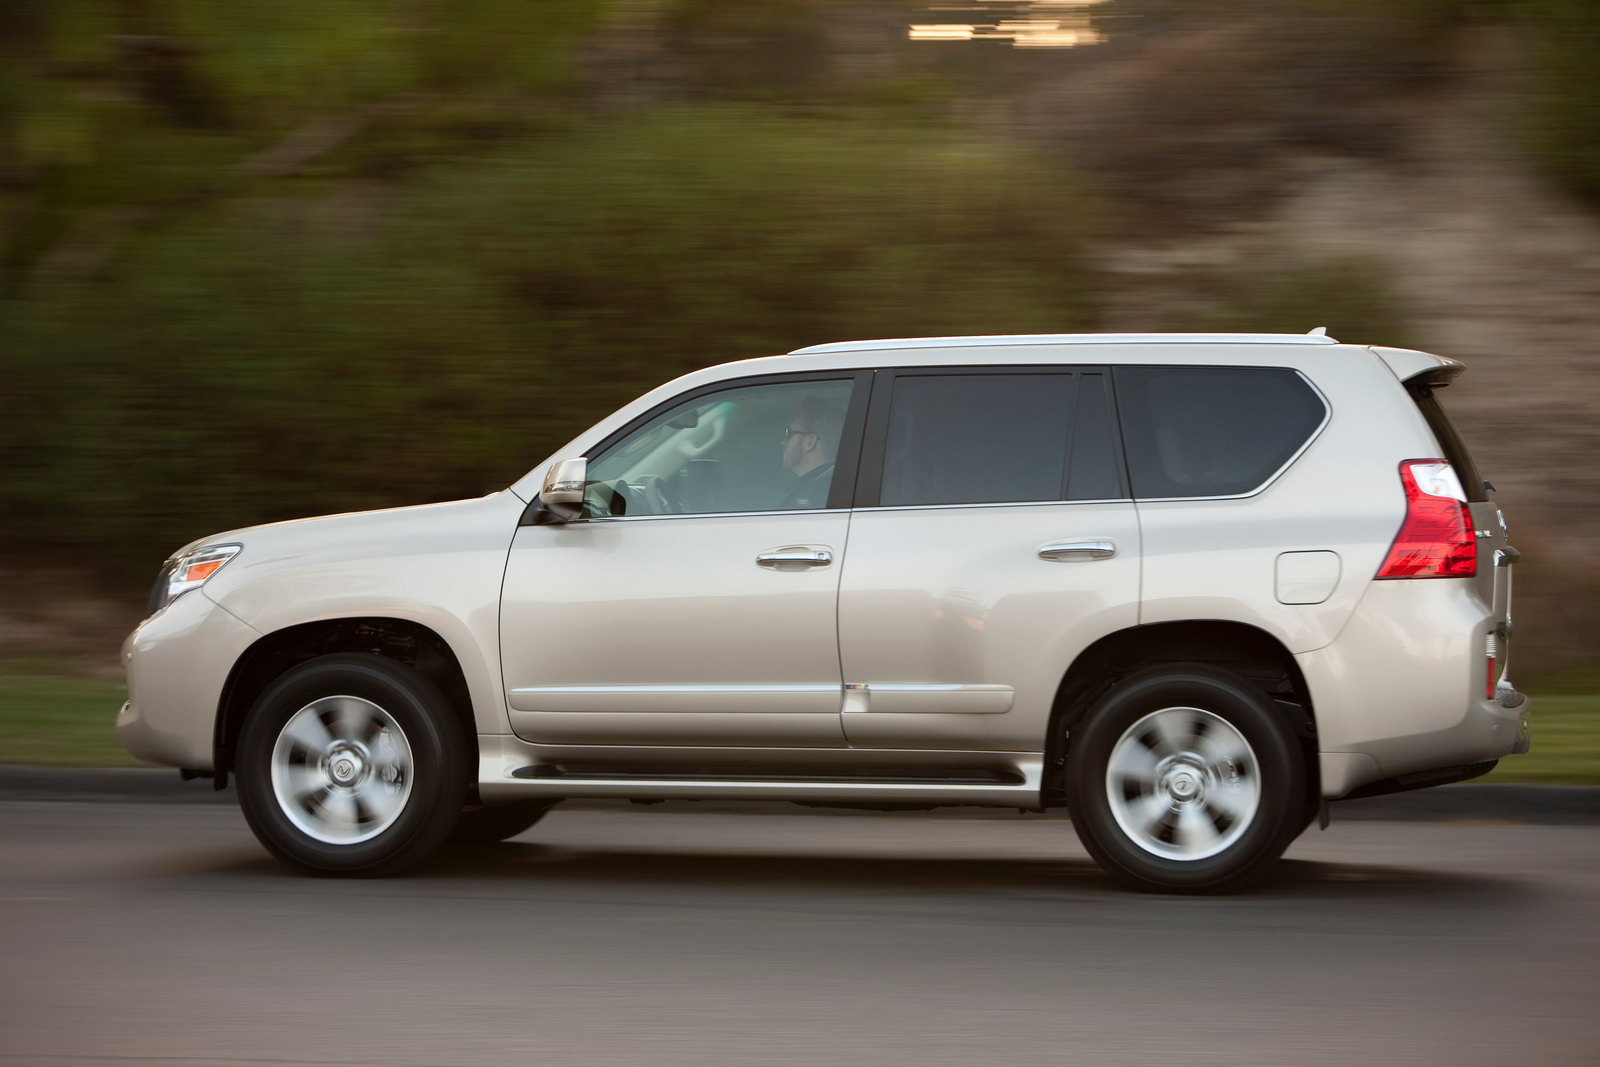 Consumer Reports Labels 2010 Lexus Gx 460 As A Safety